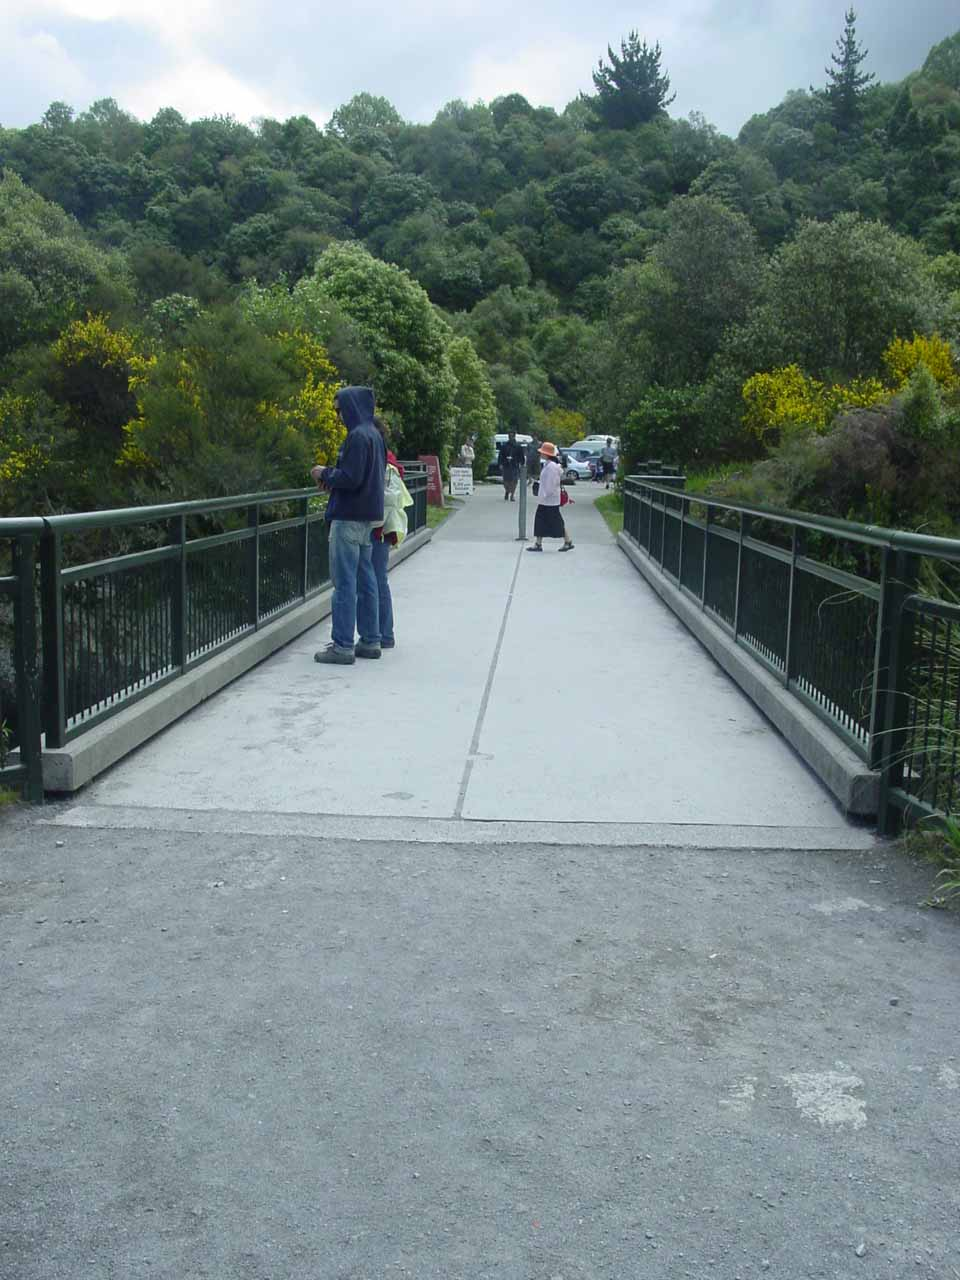 Looking back towards the bridge over the Waikato River and towards the car park